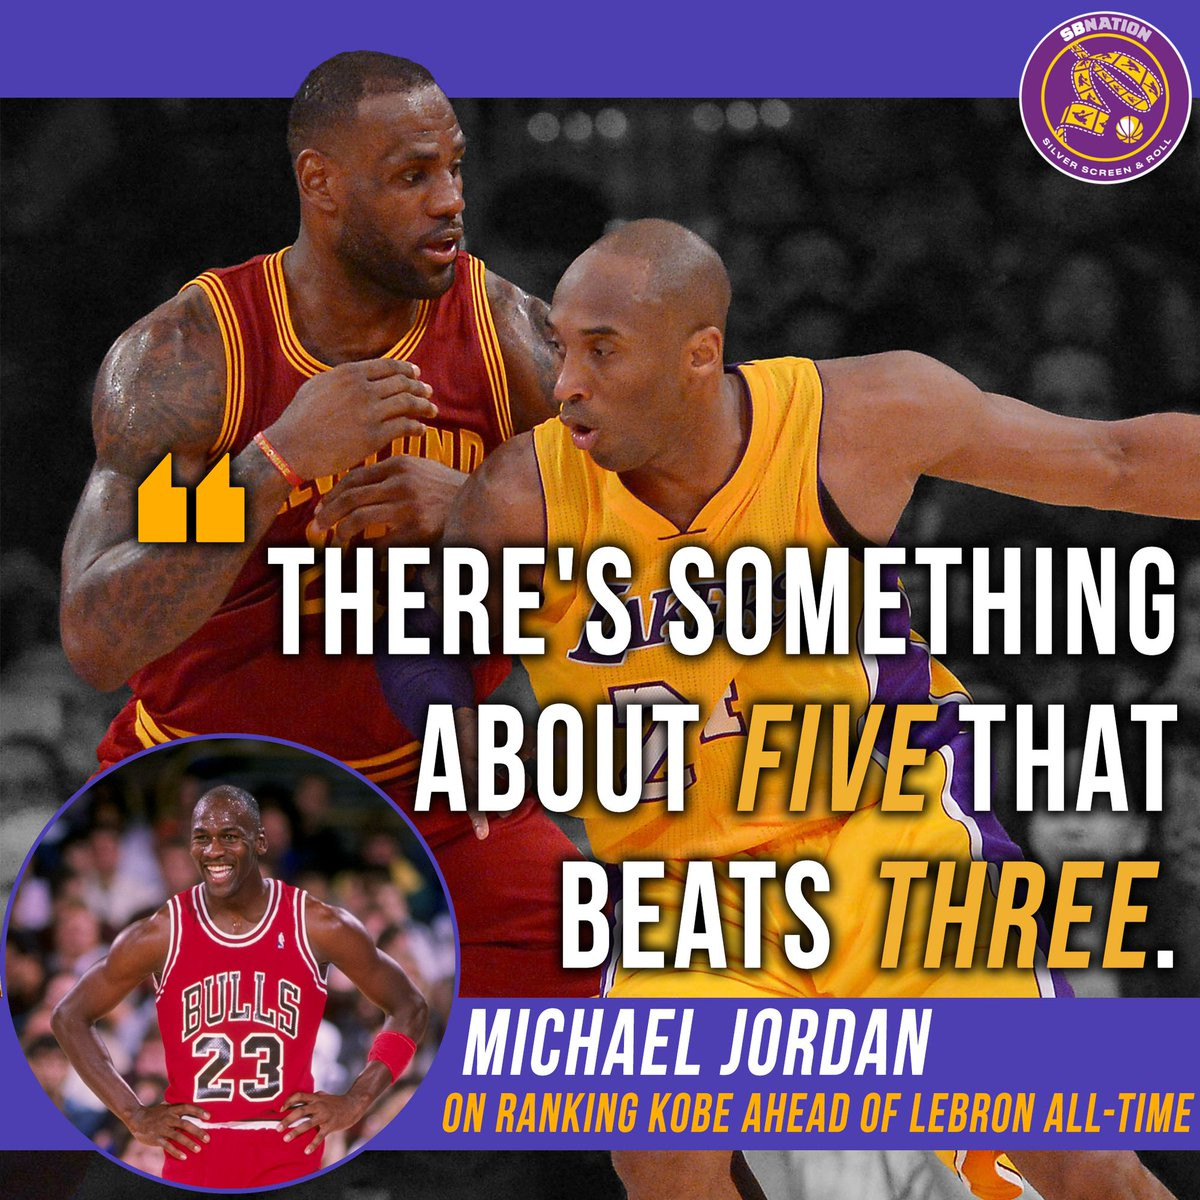 44d8975f2a0 His avi changed.  https   www.silverscreenandroll.com 2017 8 2 16084694 la-lakers-news- michael-jordan-kobe-bryant-better-lebron-james-hes-right-suckaz  ...